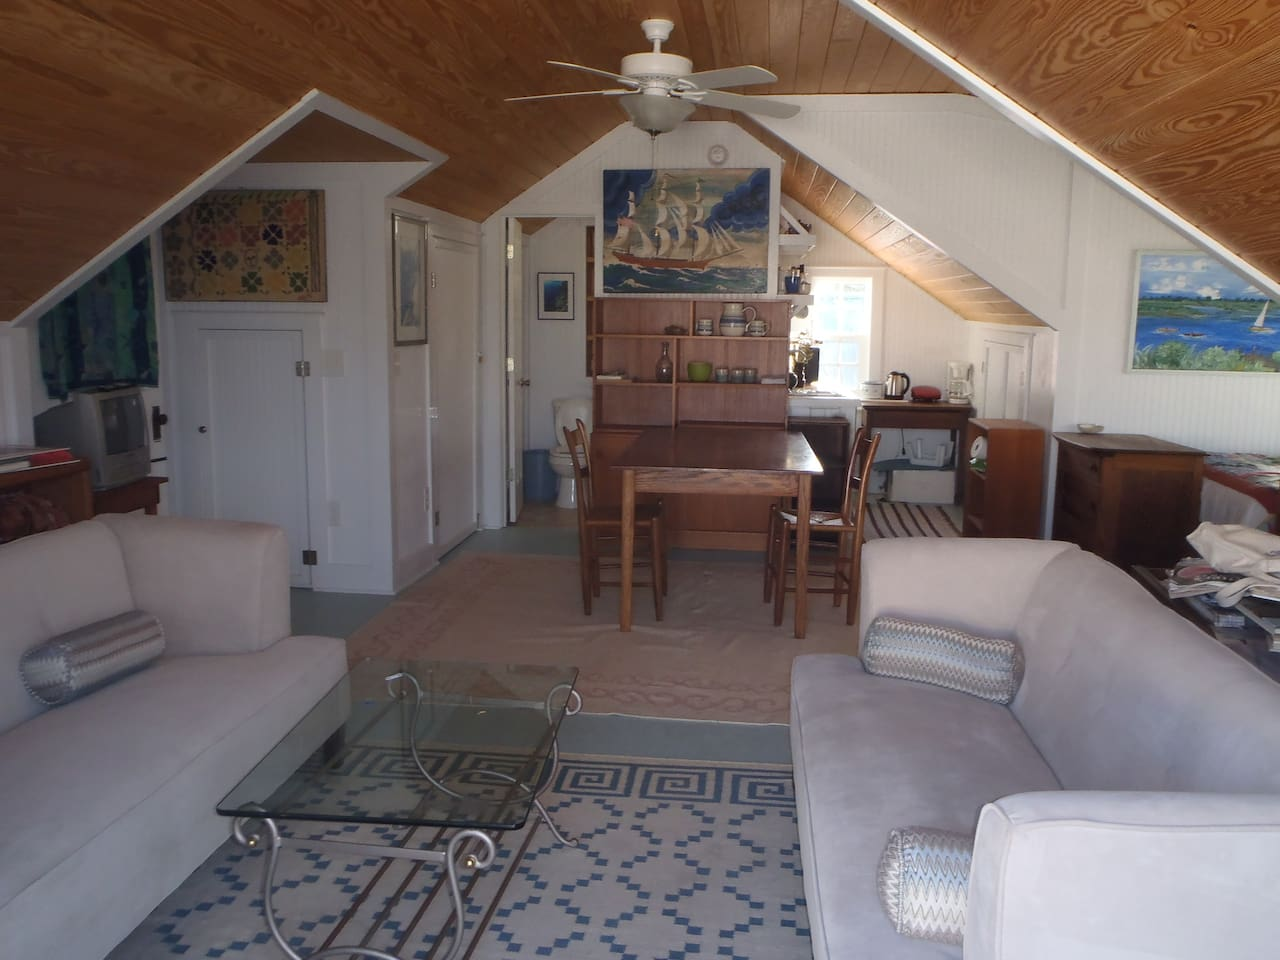 Great room has nautical theme: host is author/ editor, retired professor and sailboat captain. Lots of light: Sitting/ dining area, kitchenette alcove, small bathroom with shower.